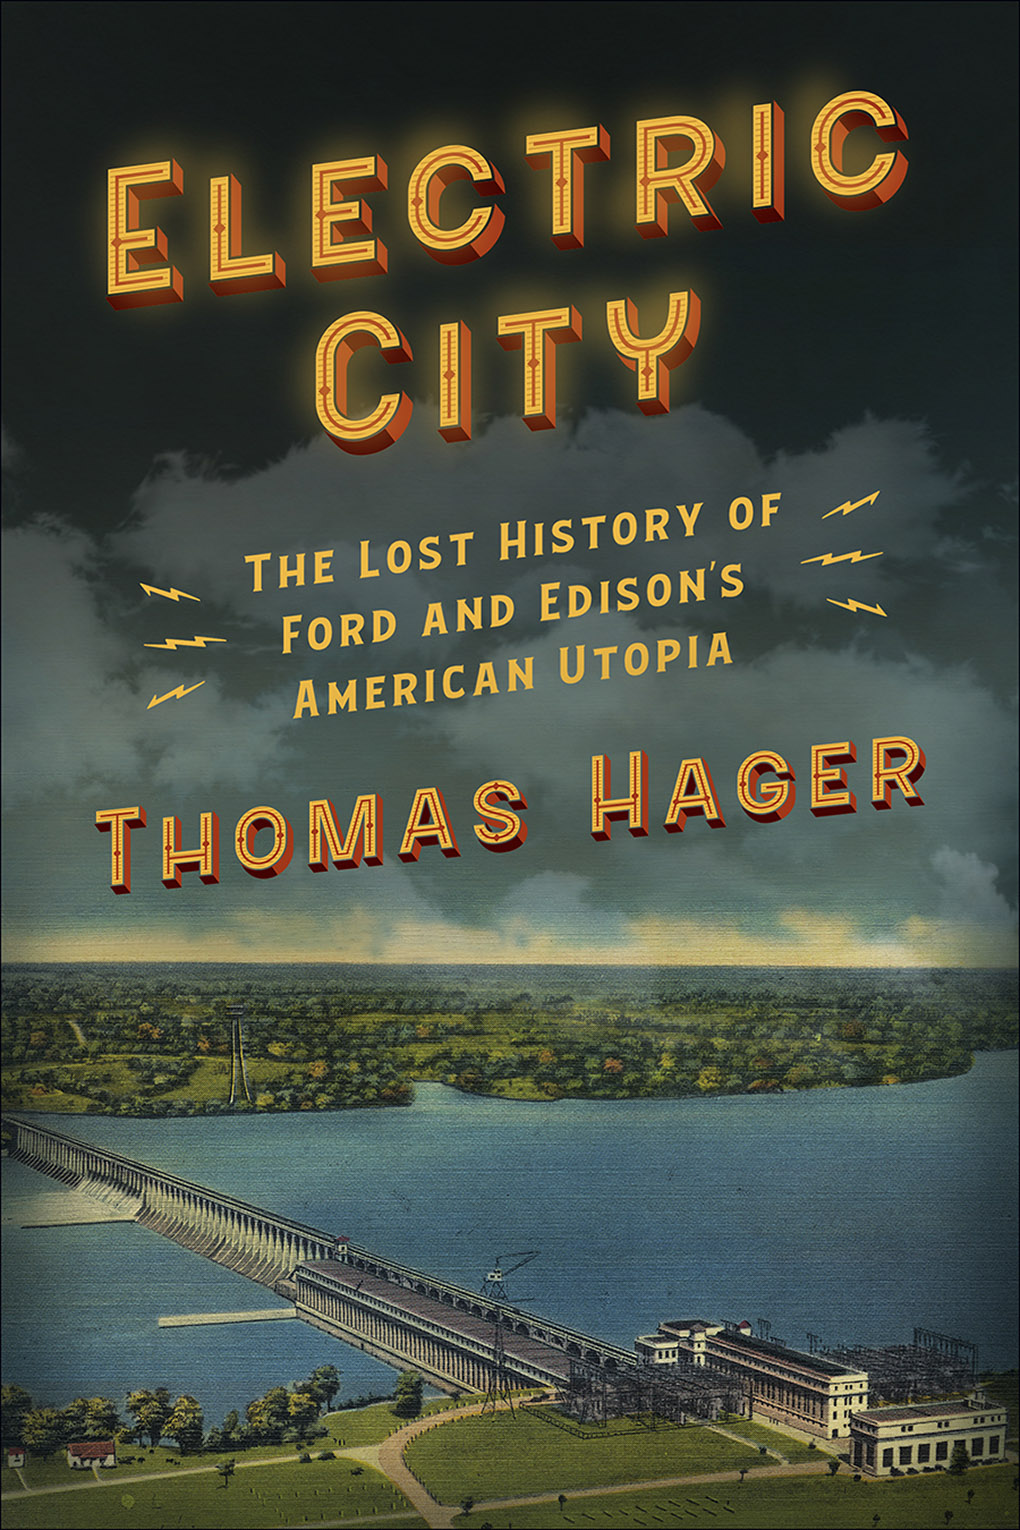 Electric City: How Thomas Edison and Henry Ford Tried to Build Utopia and Instead Created Our World